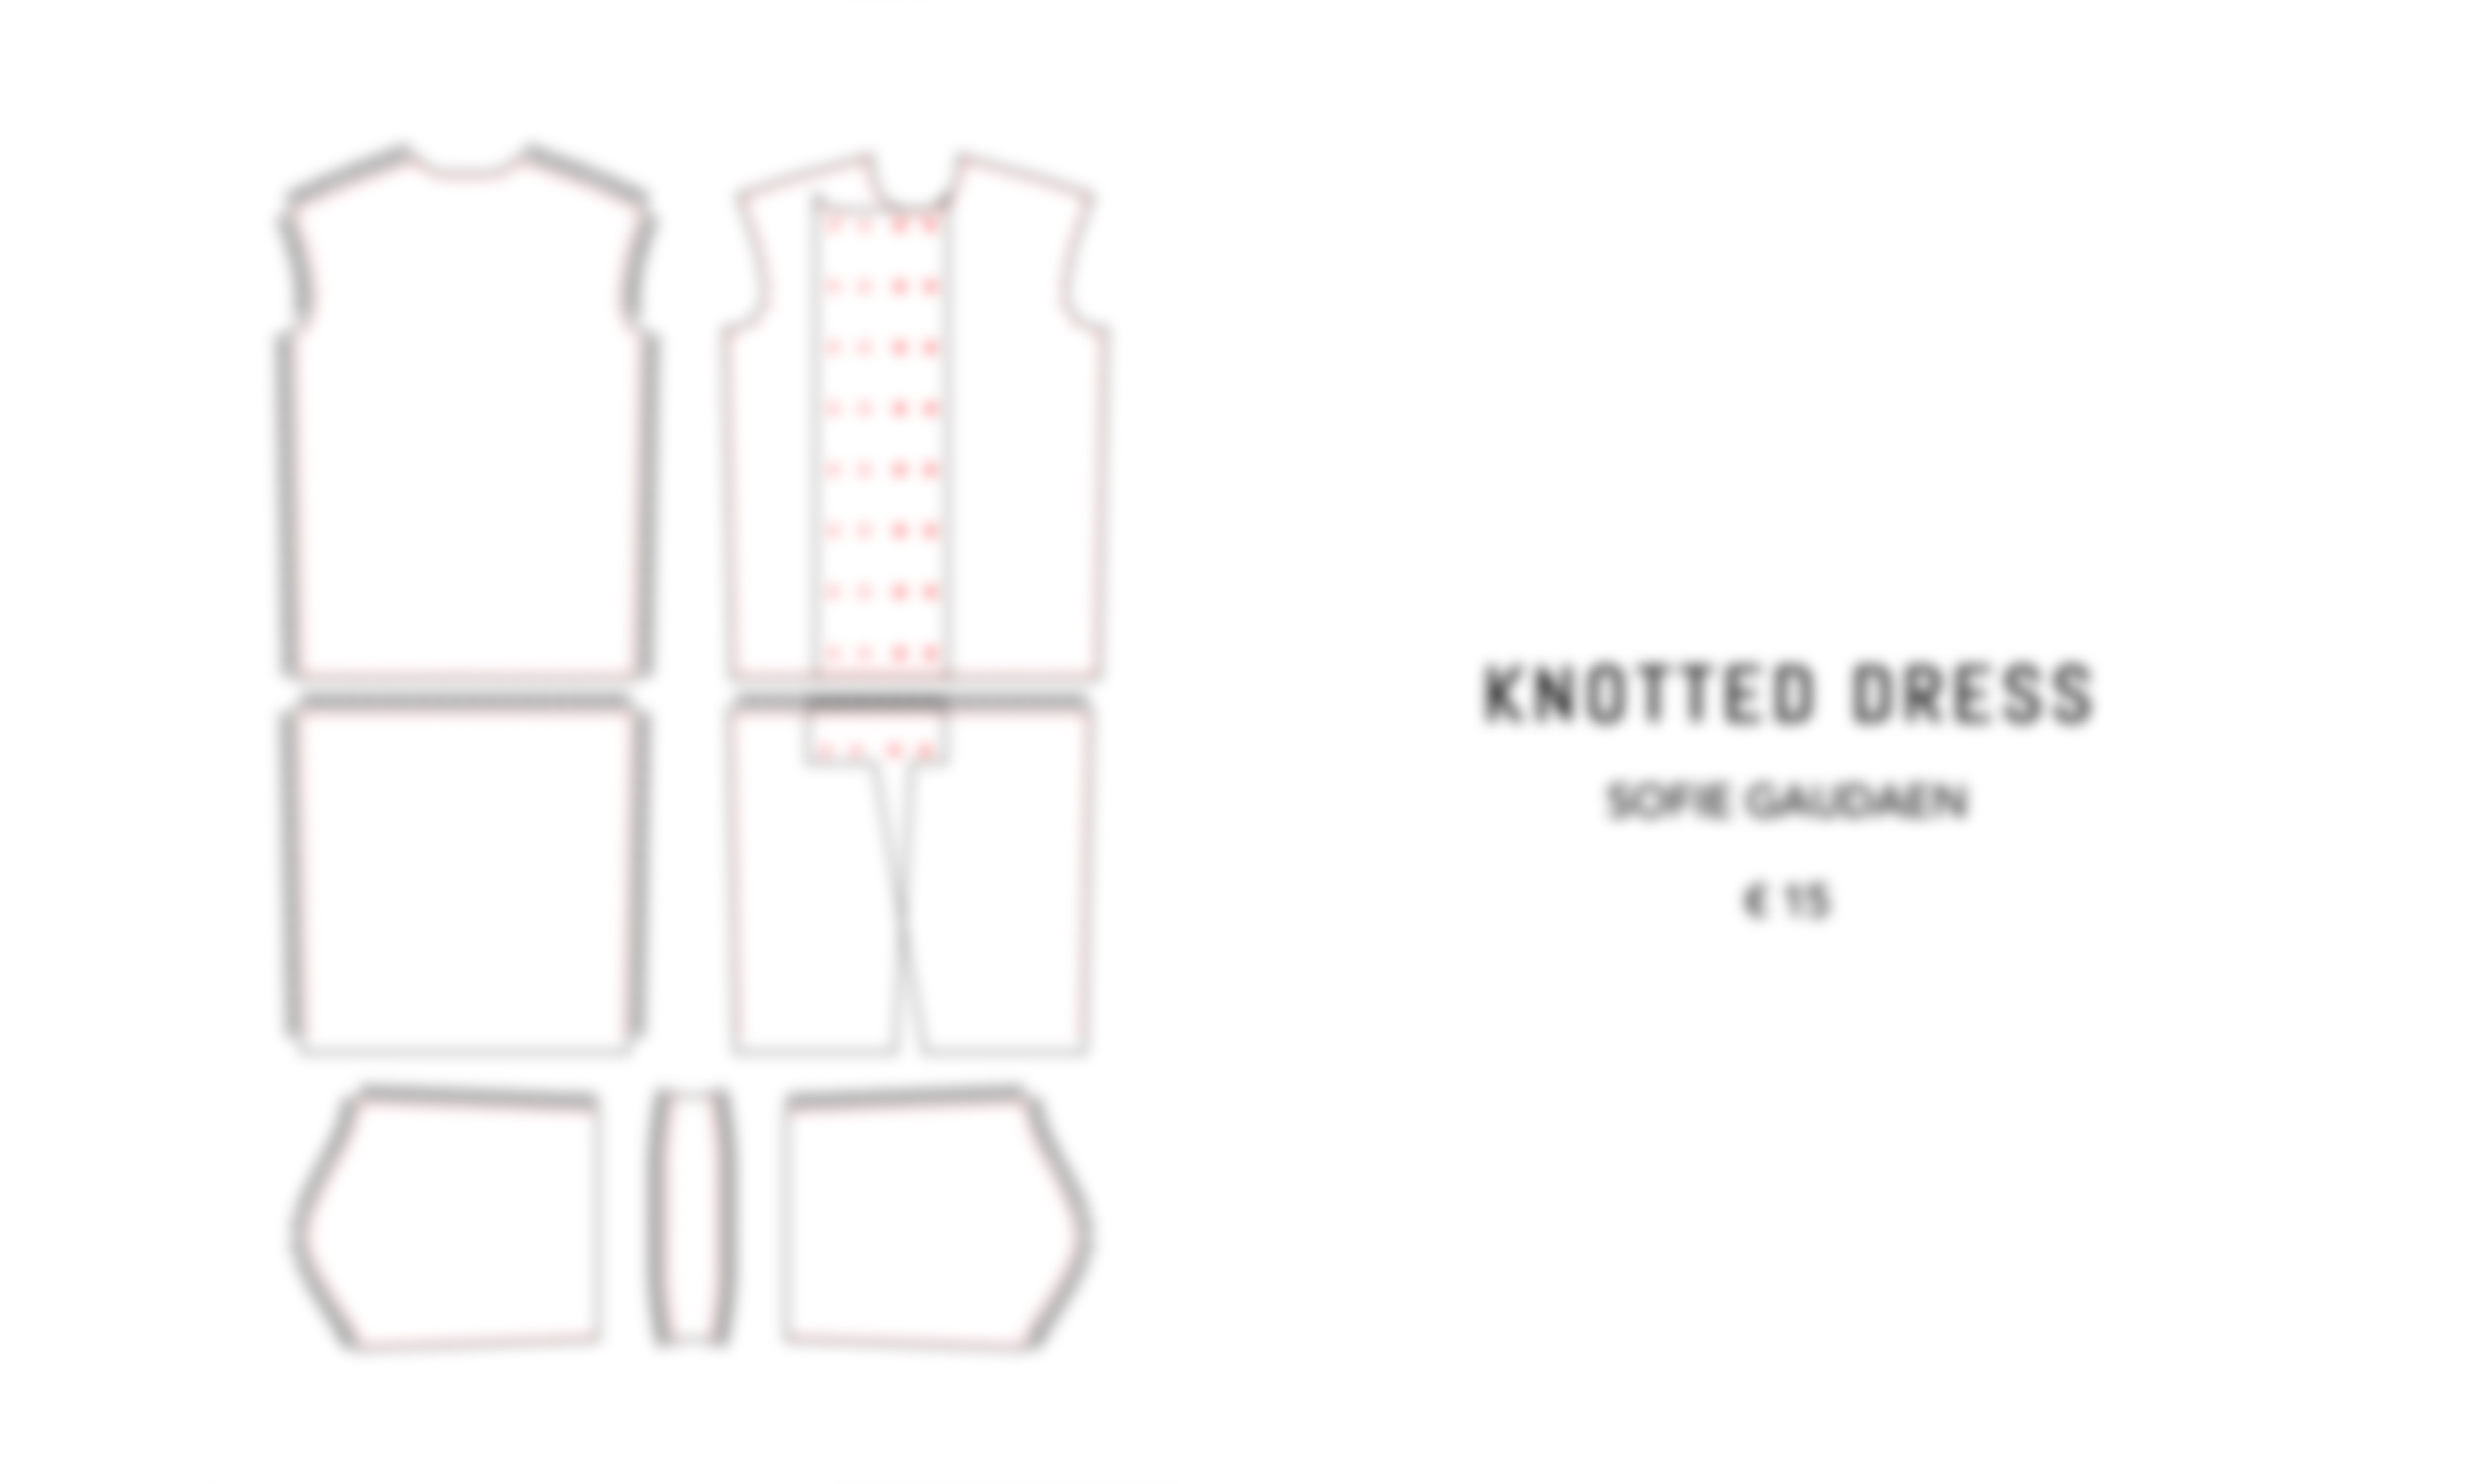 shop_digital_landscape_knotteddress_bl.jpg